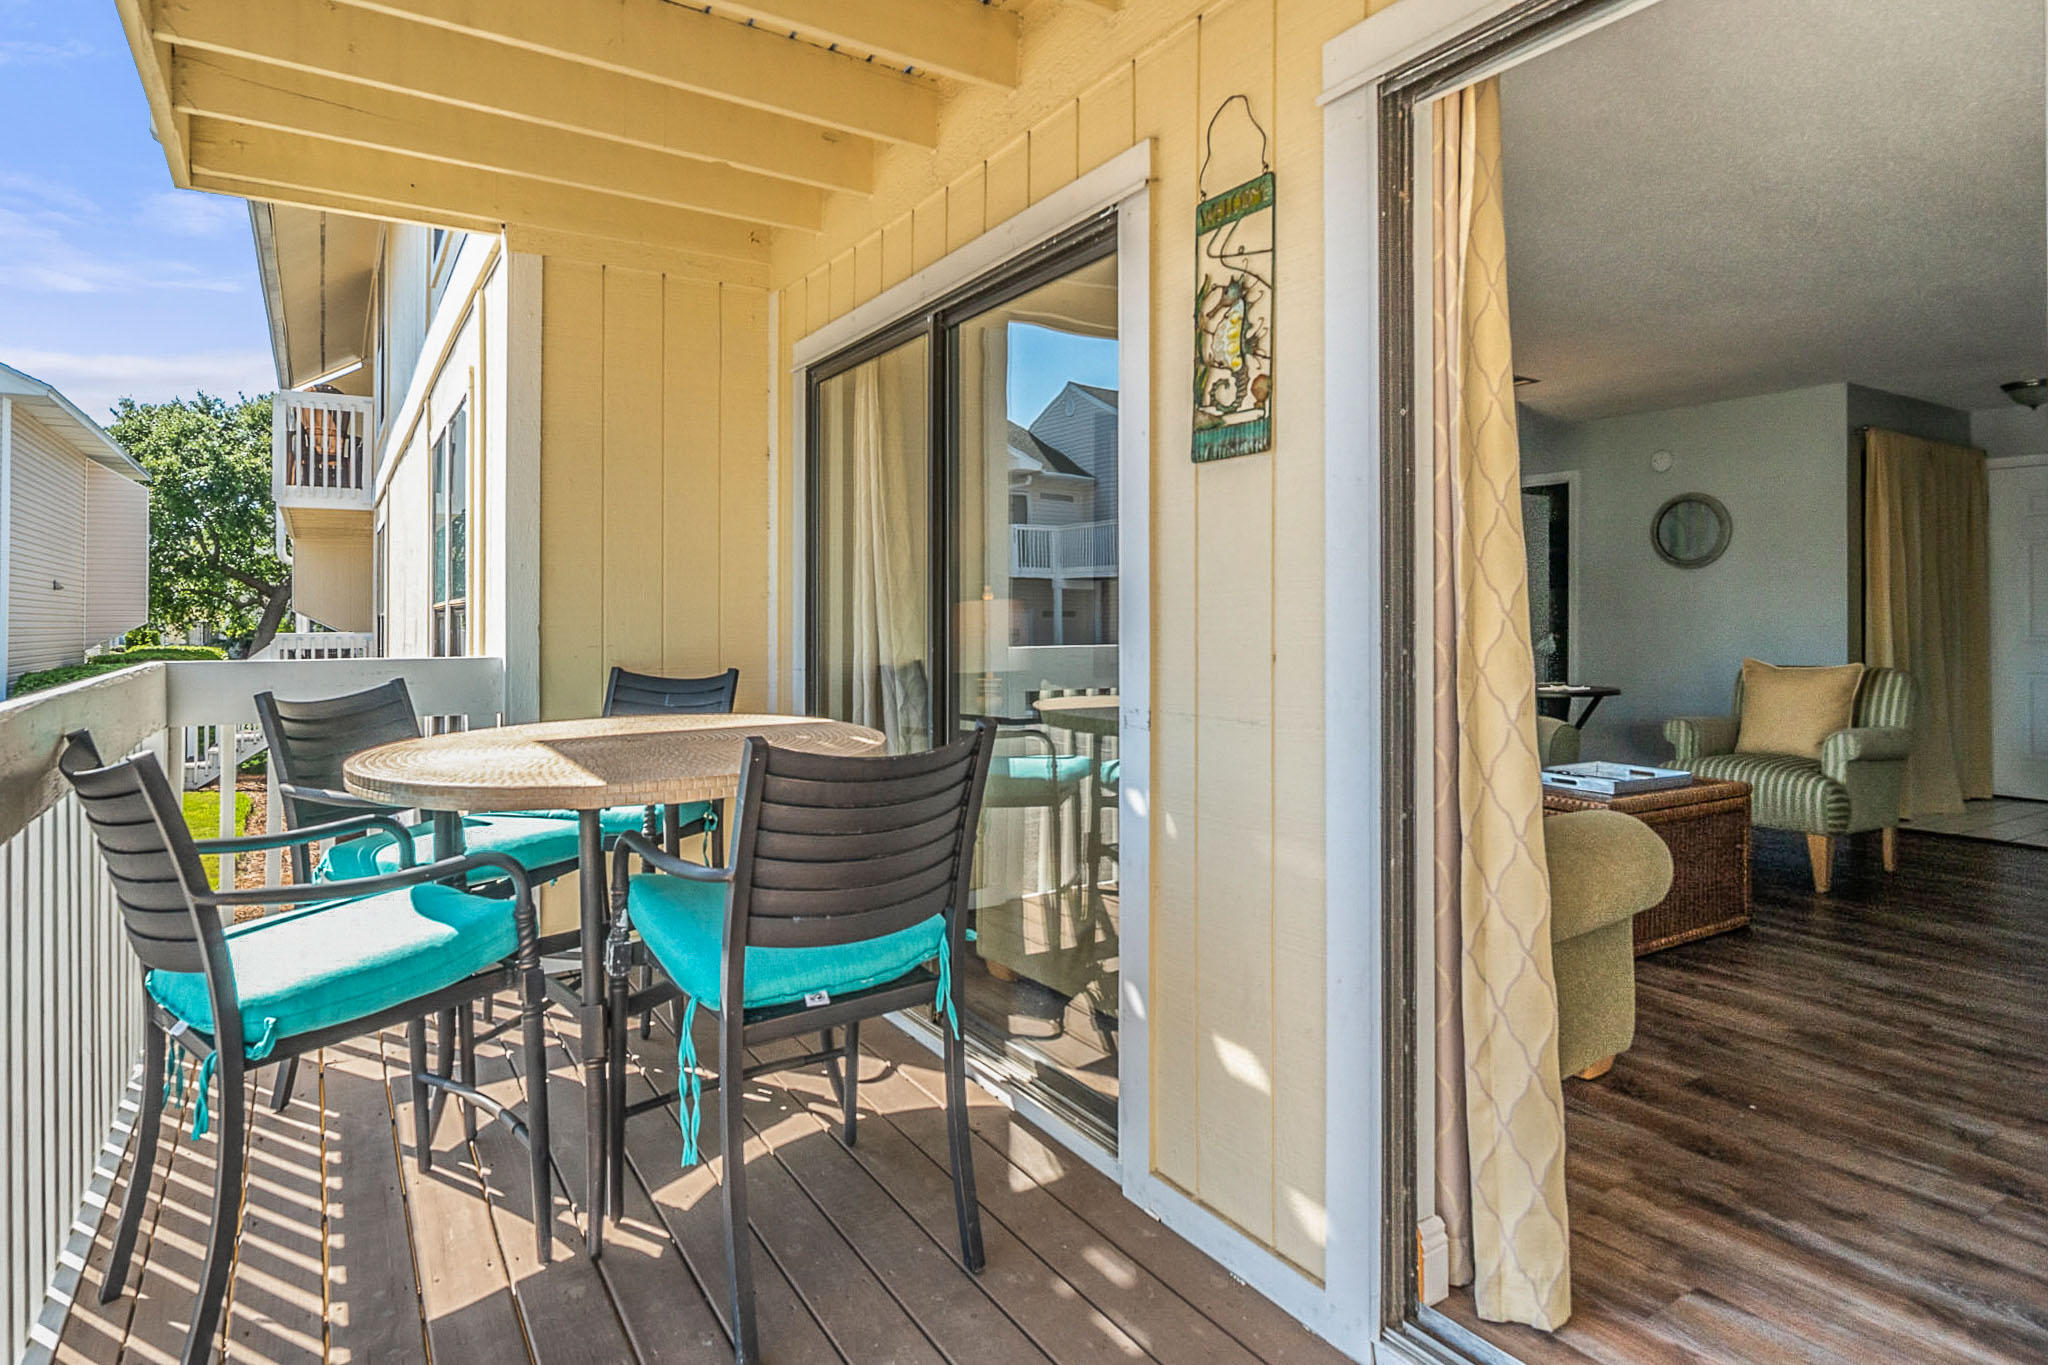 This beautifully decorated 2 bedroom/2 bath condo in Sanpiper Cove is located just inside the main gate and only steps away from the Emerald Green waters of the Gulf of Mexico.  It comes fully furnished.  The AC unit was replaced in 2018, and new TV's have been installed throughout.  You'll love spending your evenings on the back balcony.